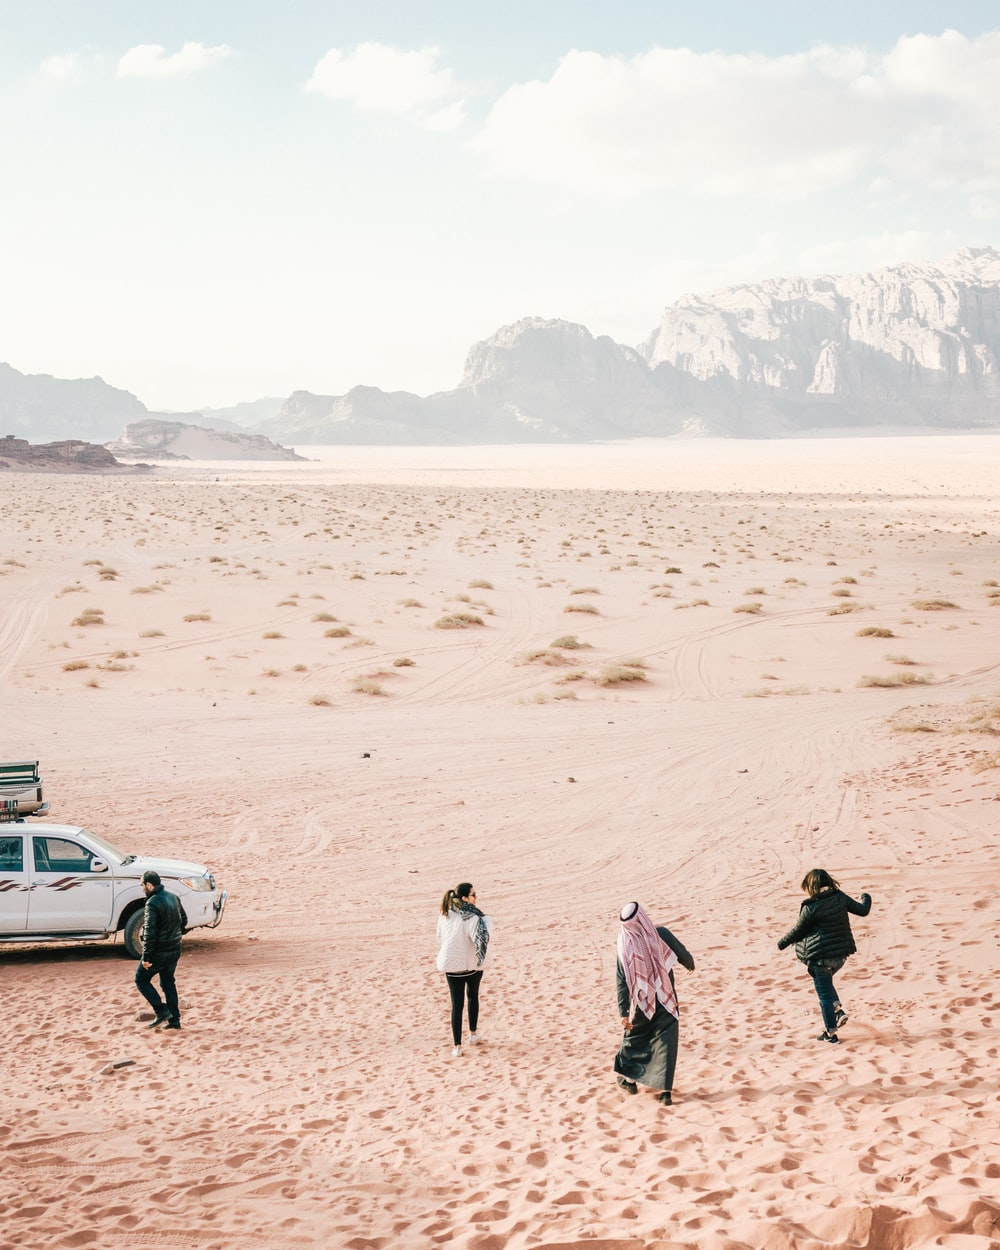 four person standing on desert